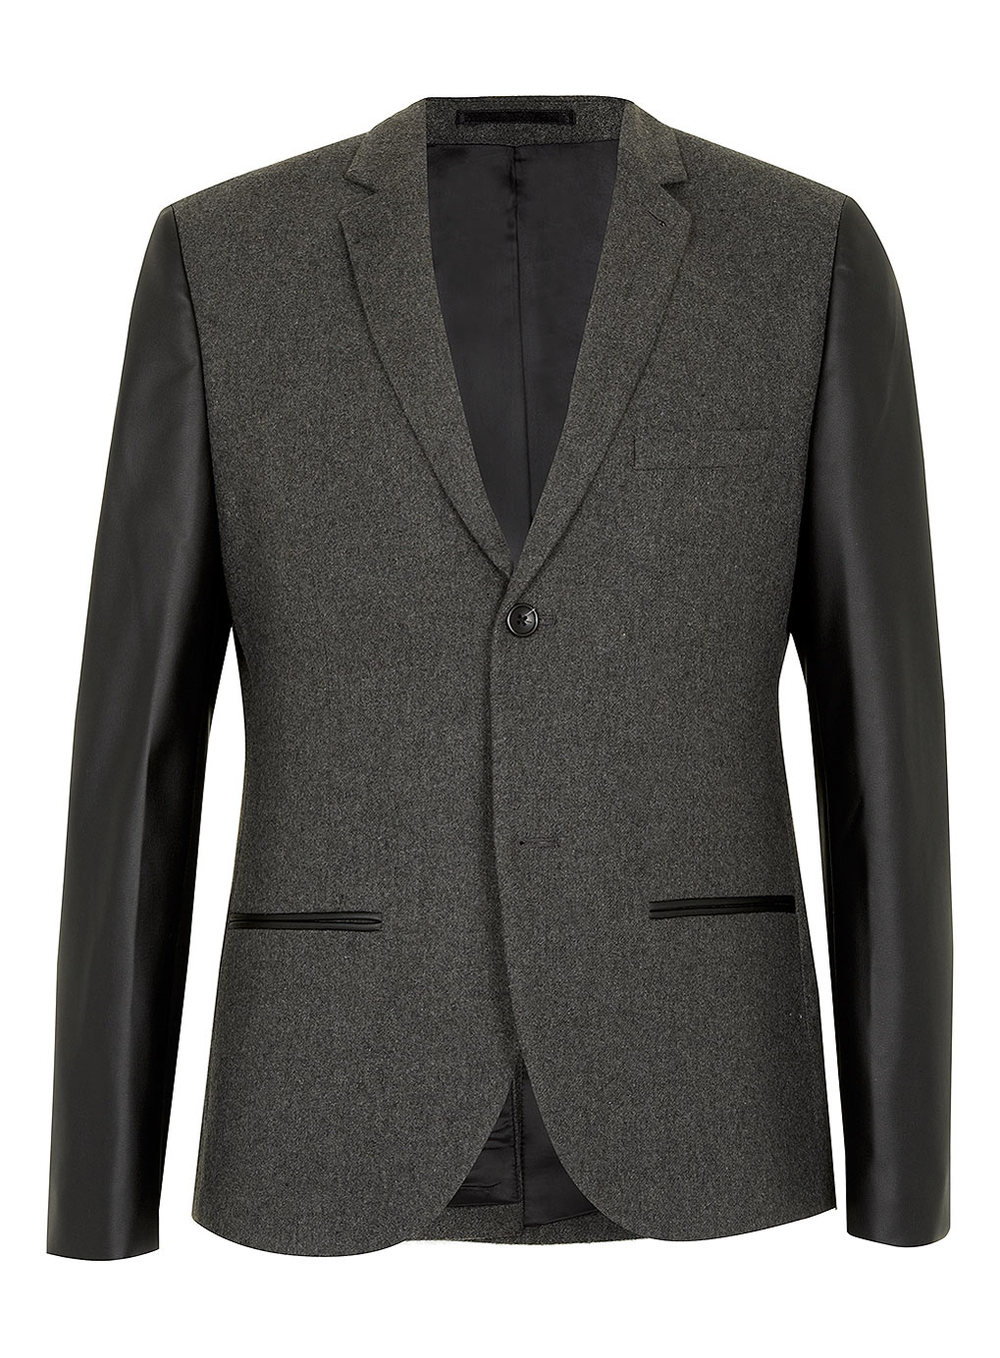 GREY HERITAGE FIT BLAZER WITH LEATHER LOOK SLEEVES